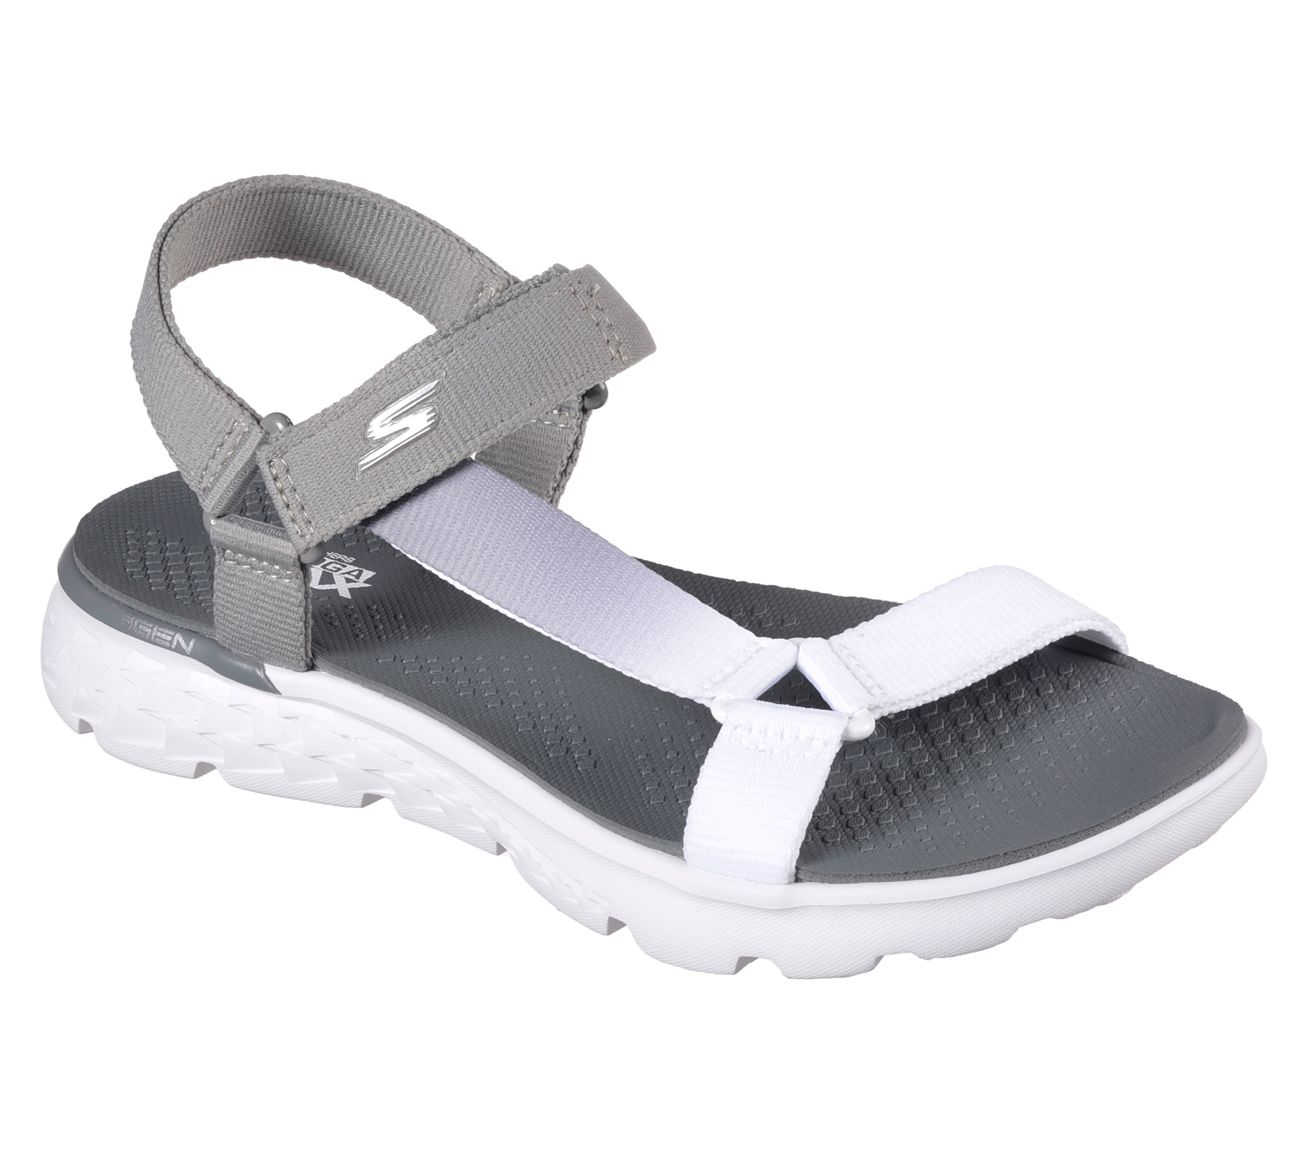 skechers goga max sandals